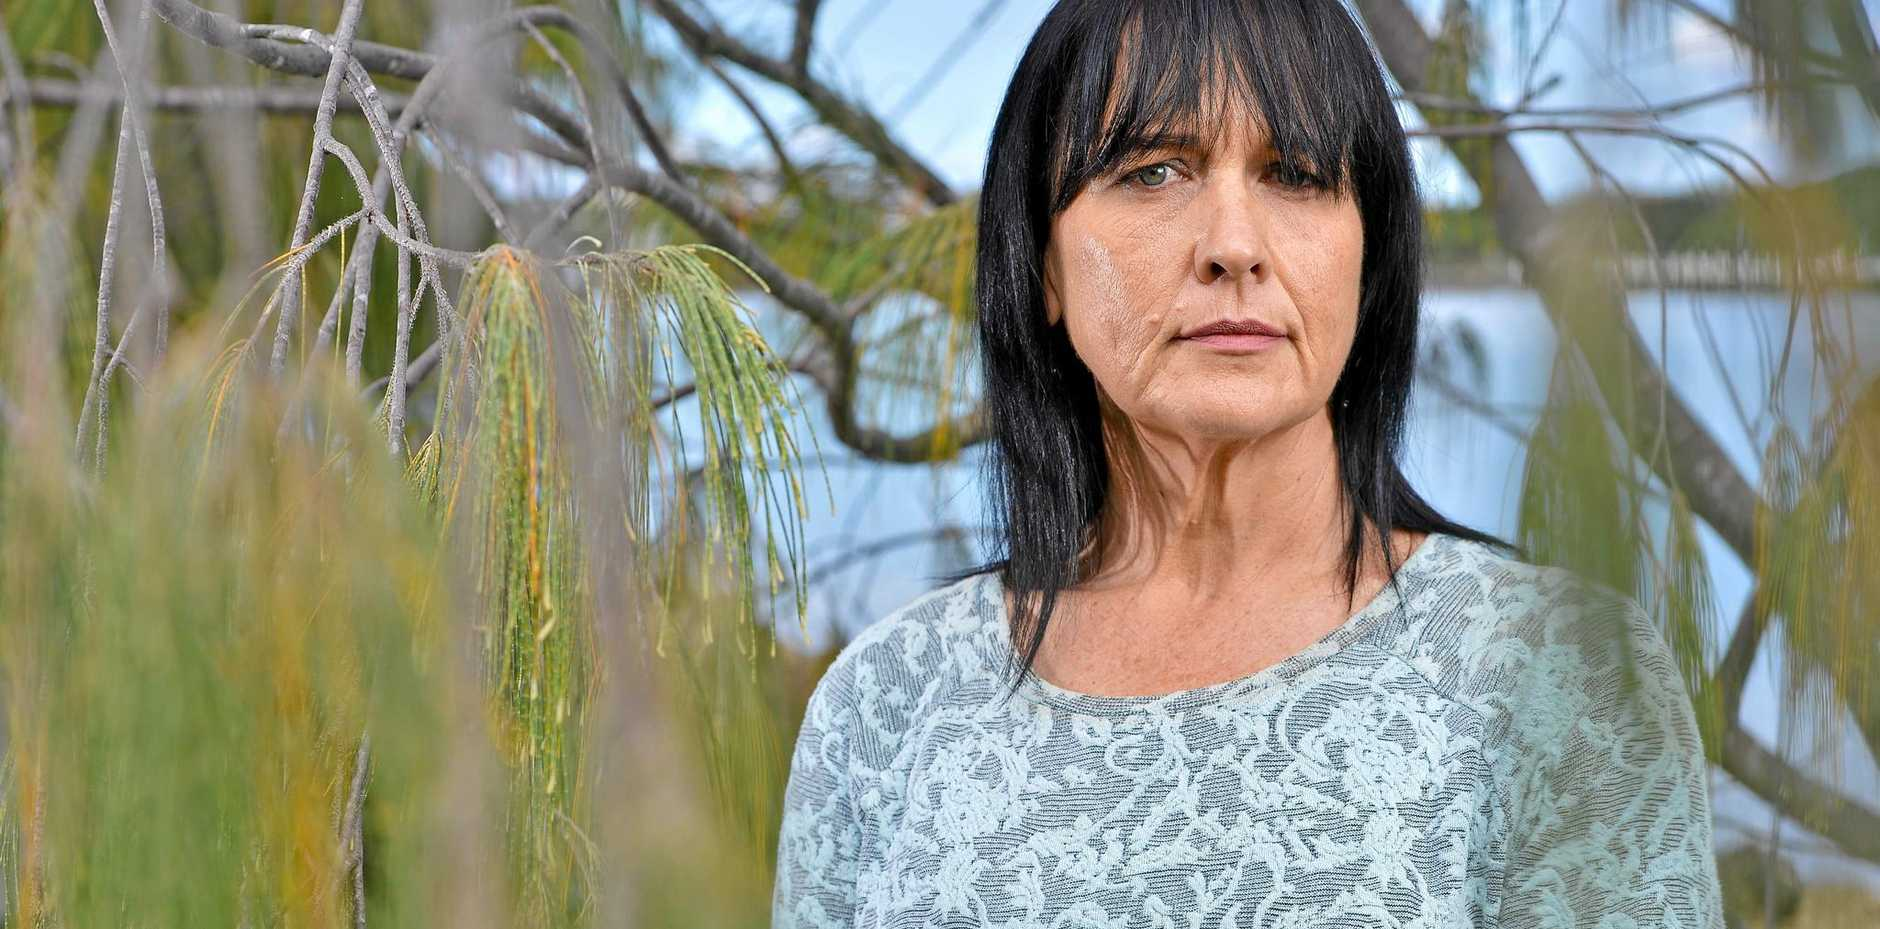 TERRIBLE IMPACT: The Observer's own Danae Jackson lives with chronic pain after contracting Ross River virus.